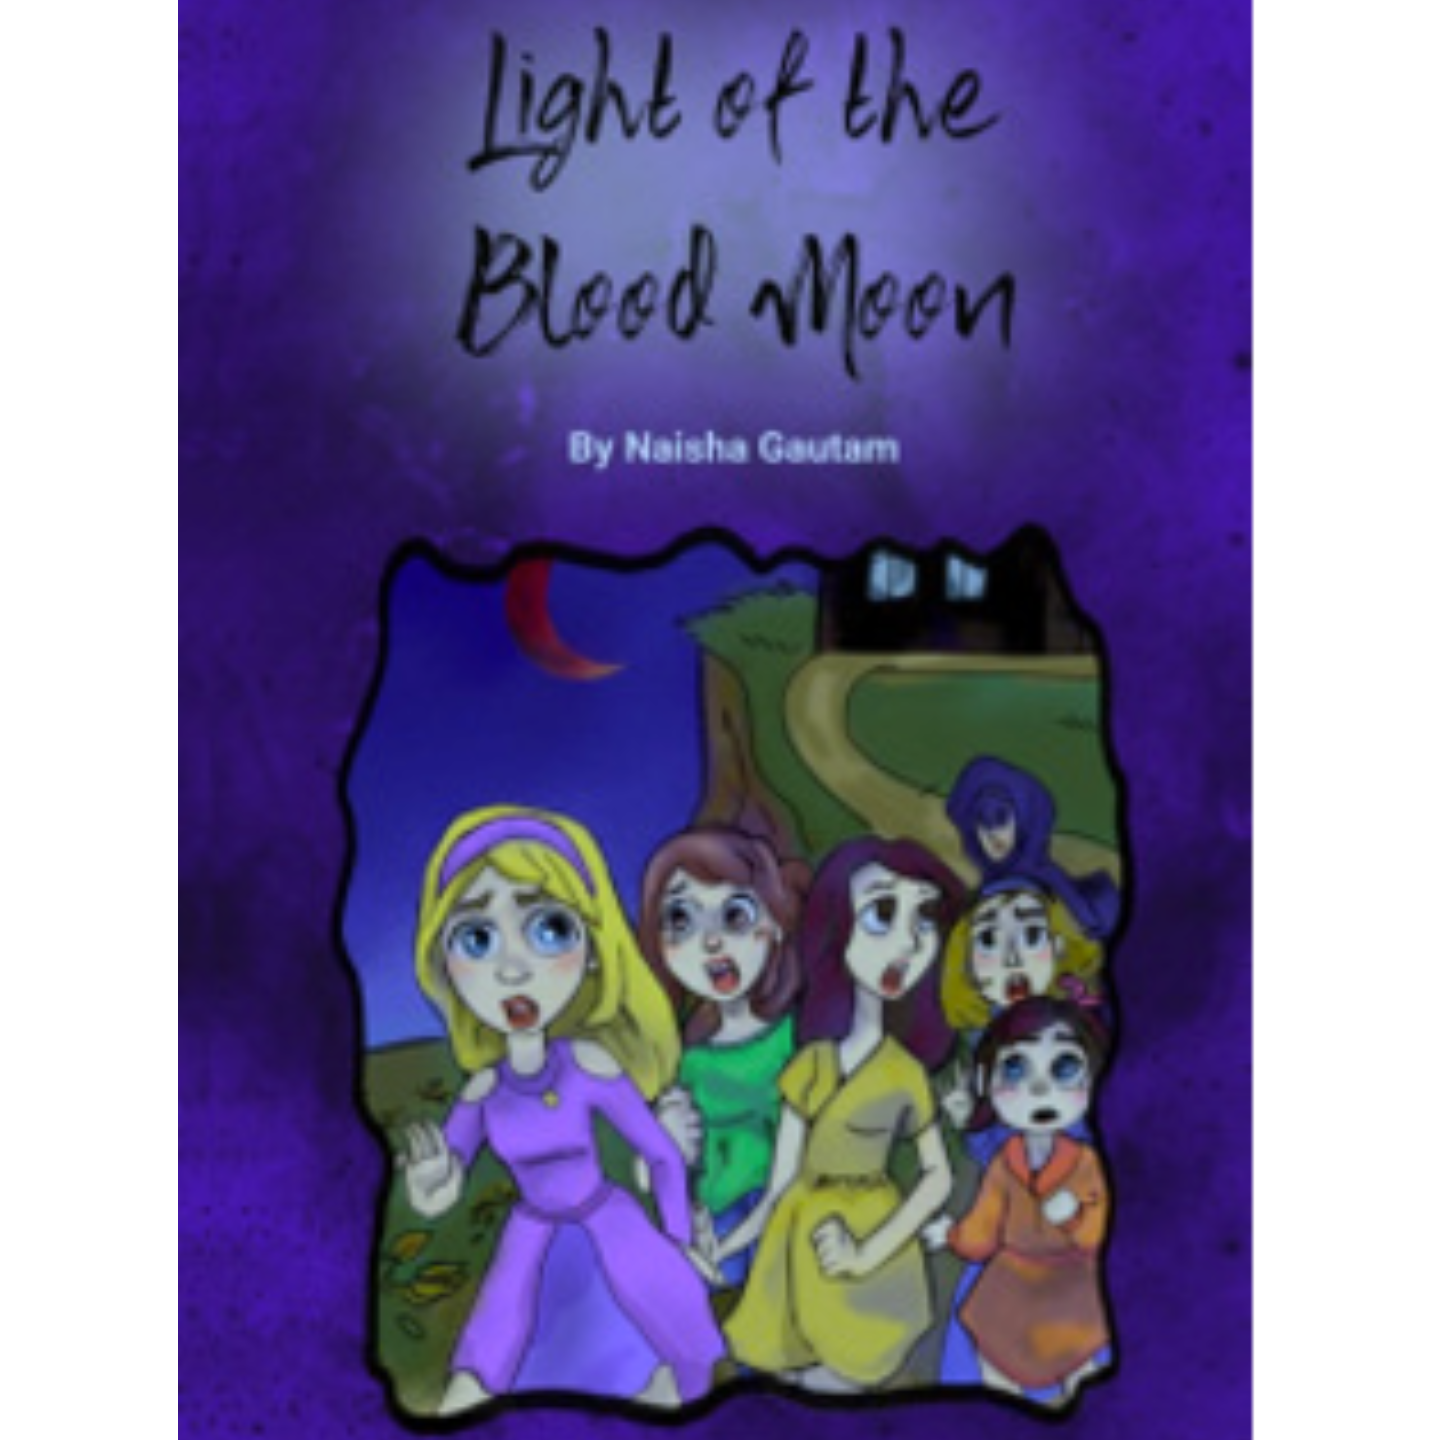 Light of the Blood Moon by Naisha Gautam